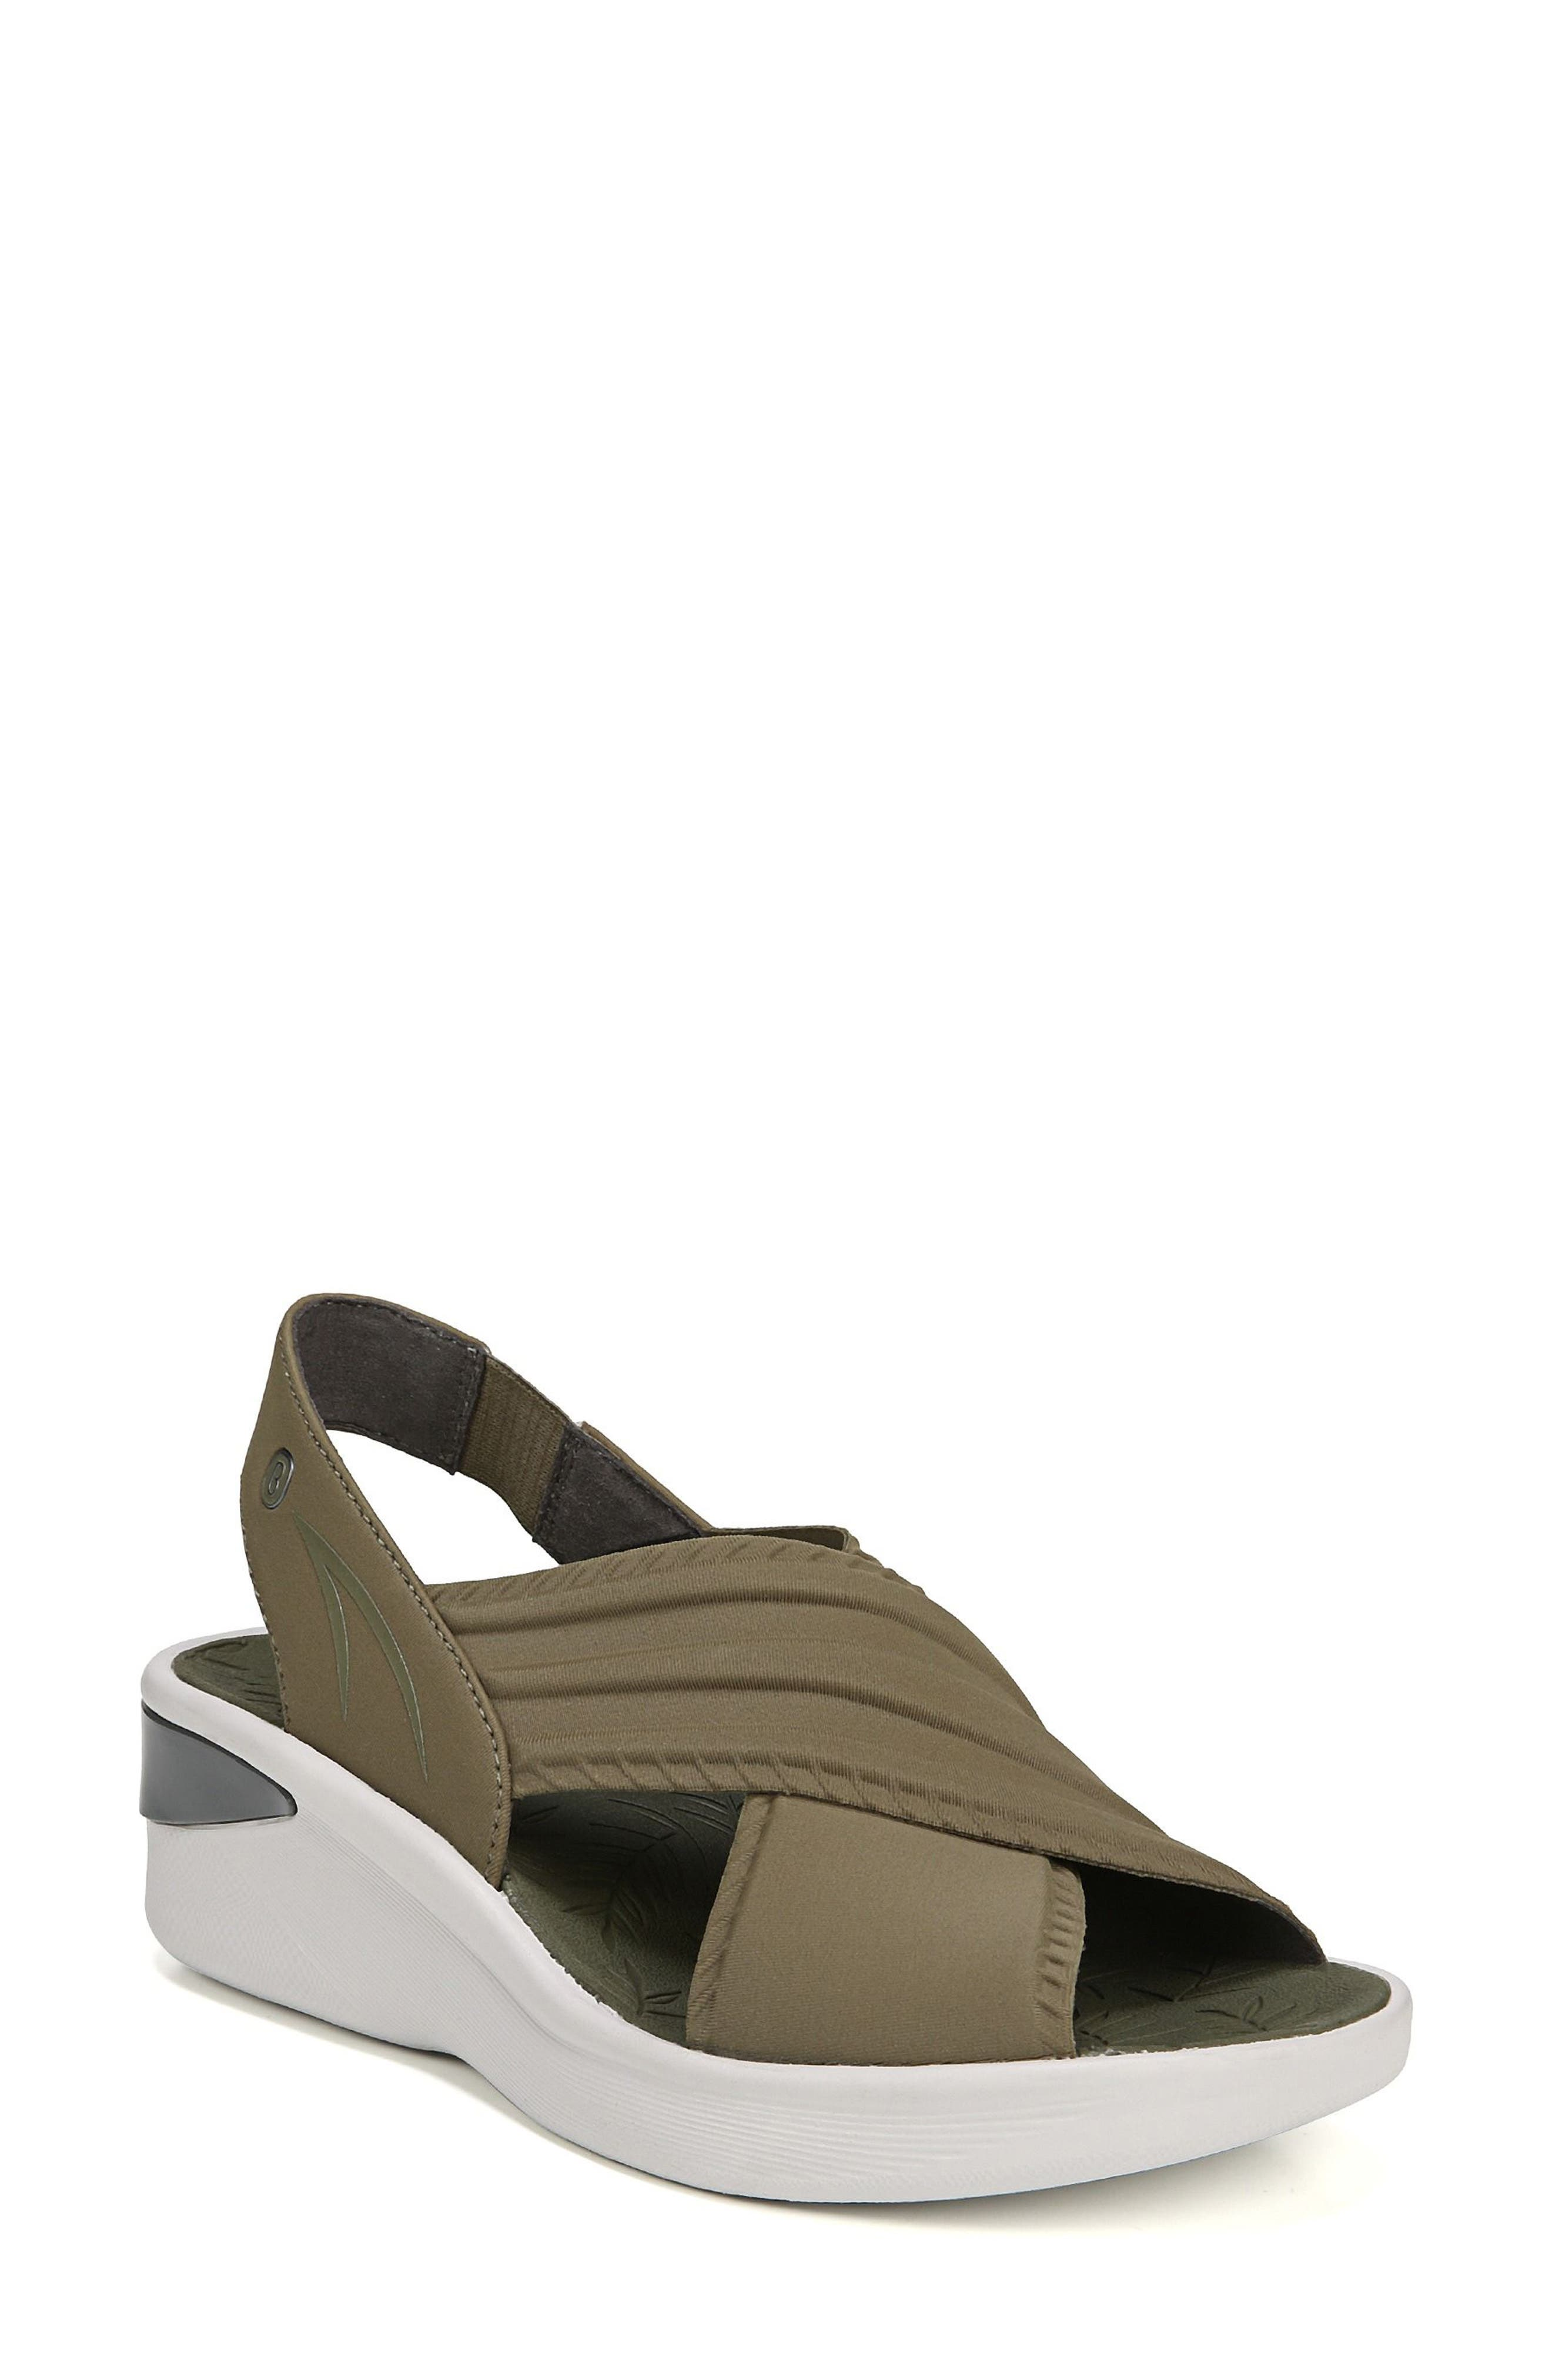 Sunset Wedge Sandal,                         Main,                         color, Olive Fabric